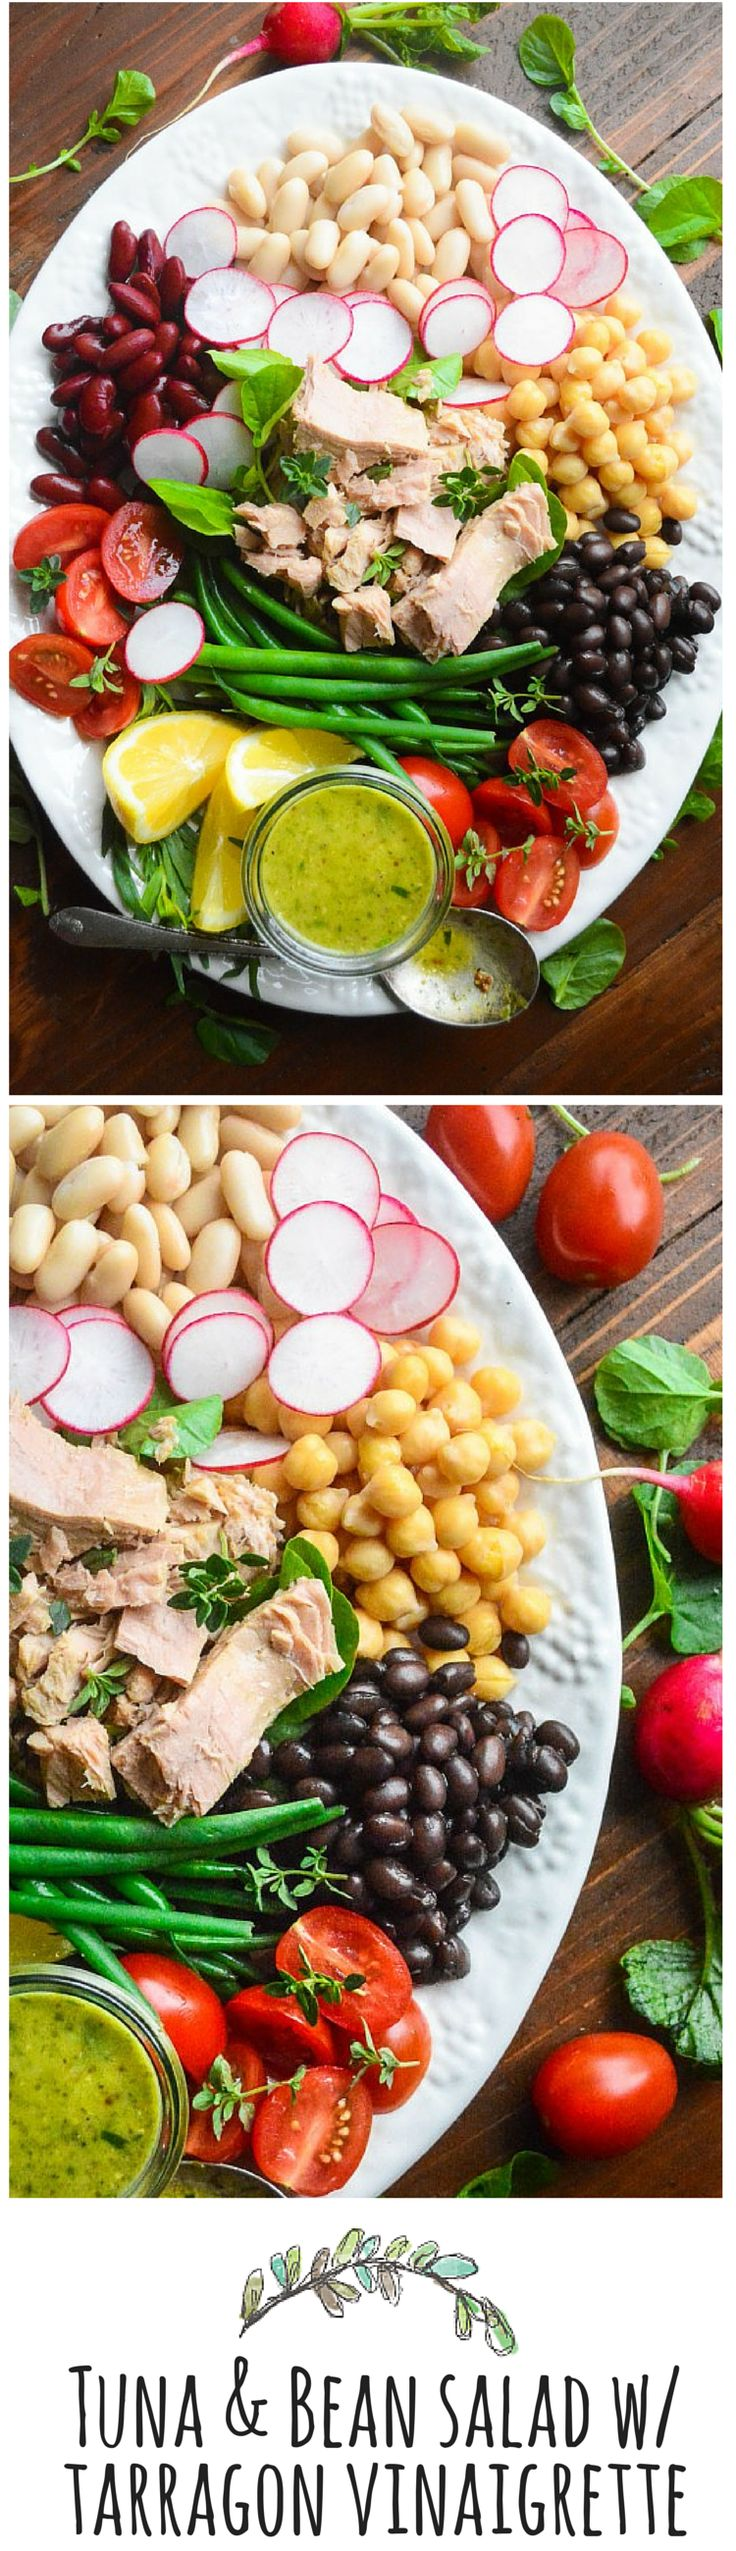 This is my favorite way to eat in the summer - this meal is perfect for 2 or 20!